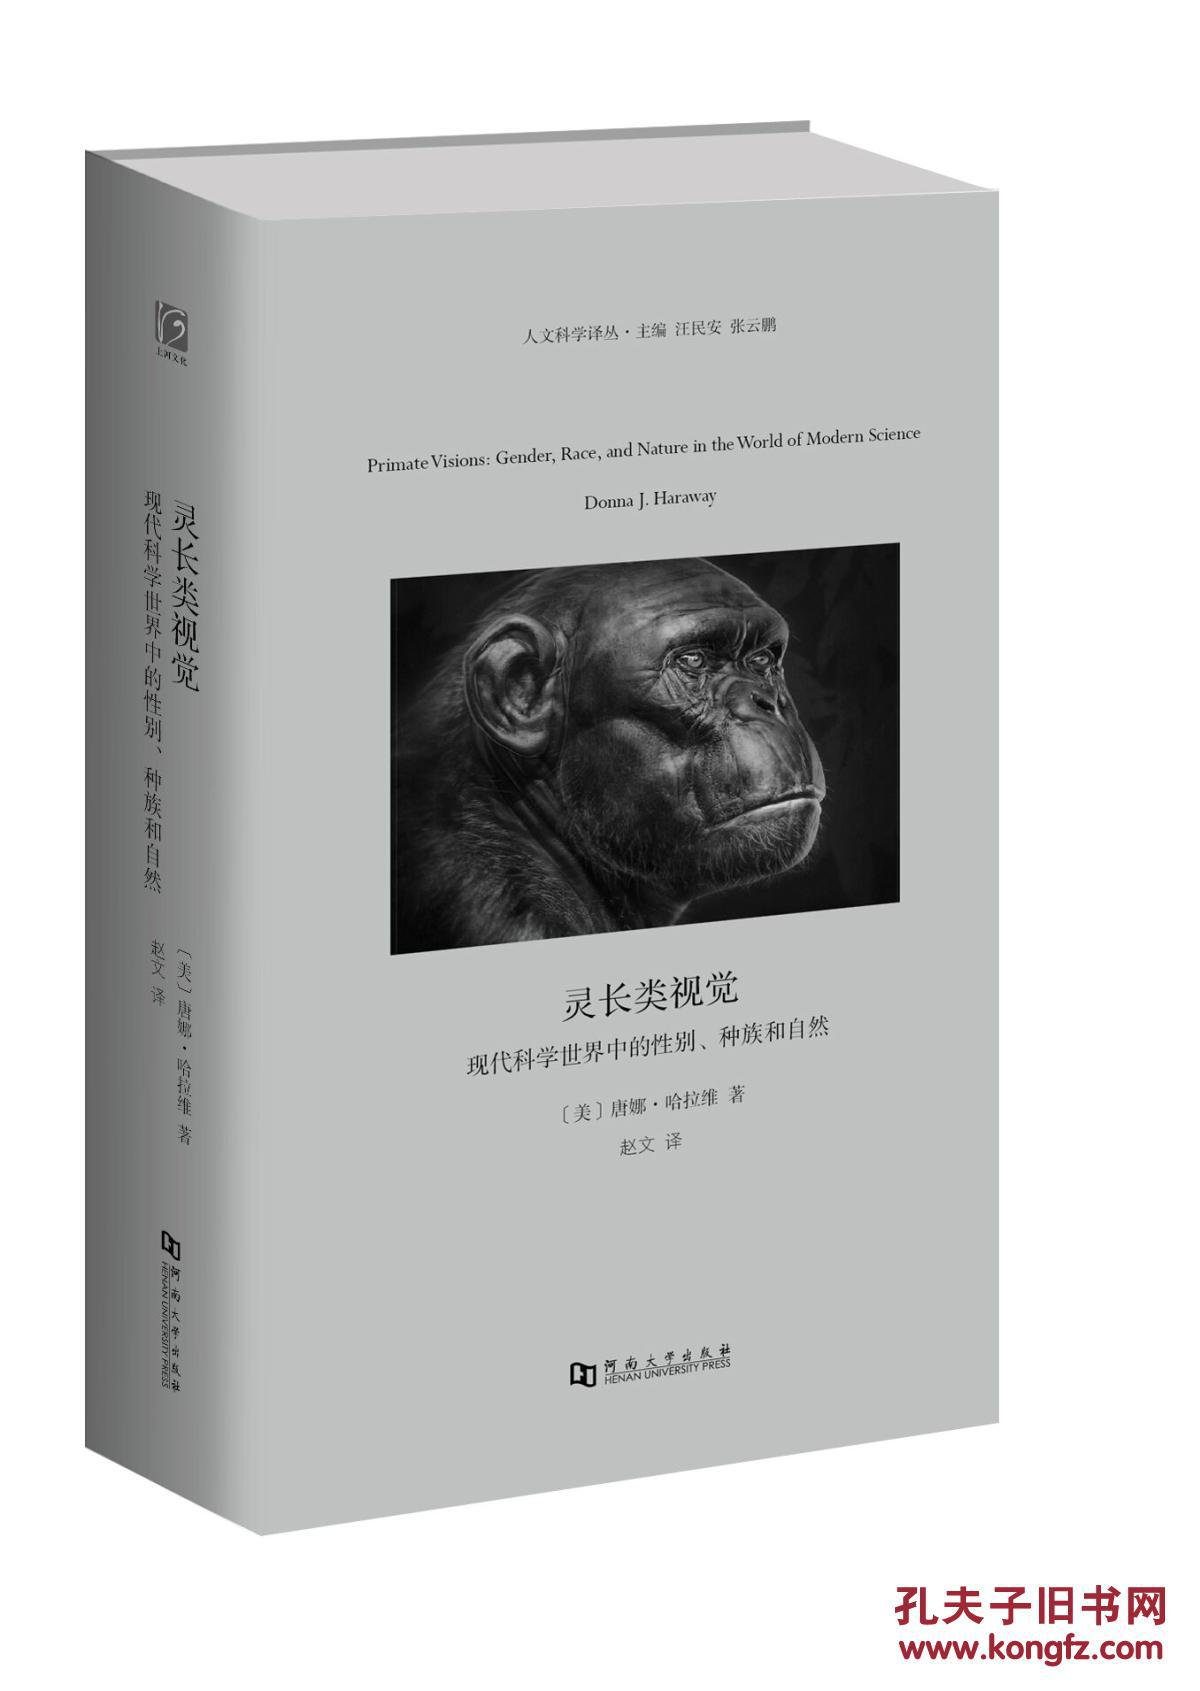 灵长类视觉——现代科学世界中的性别、种族和自然(PRIMATE VISIONS  Gender,Race,and Nature in the World of Modern Science)